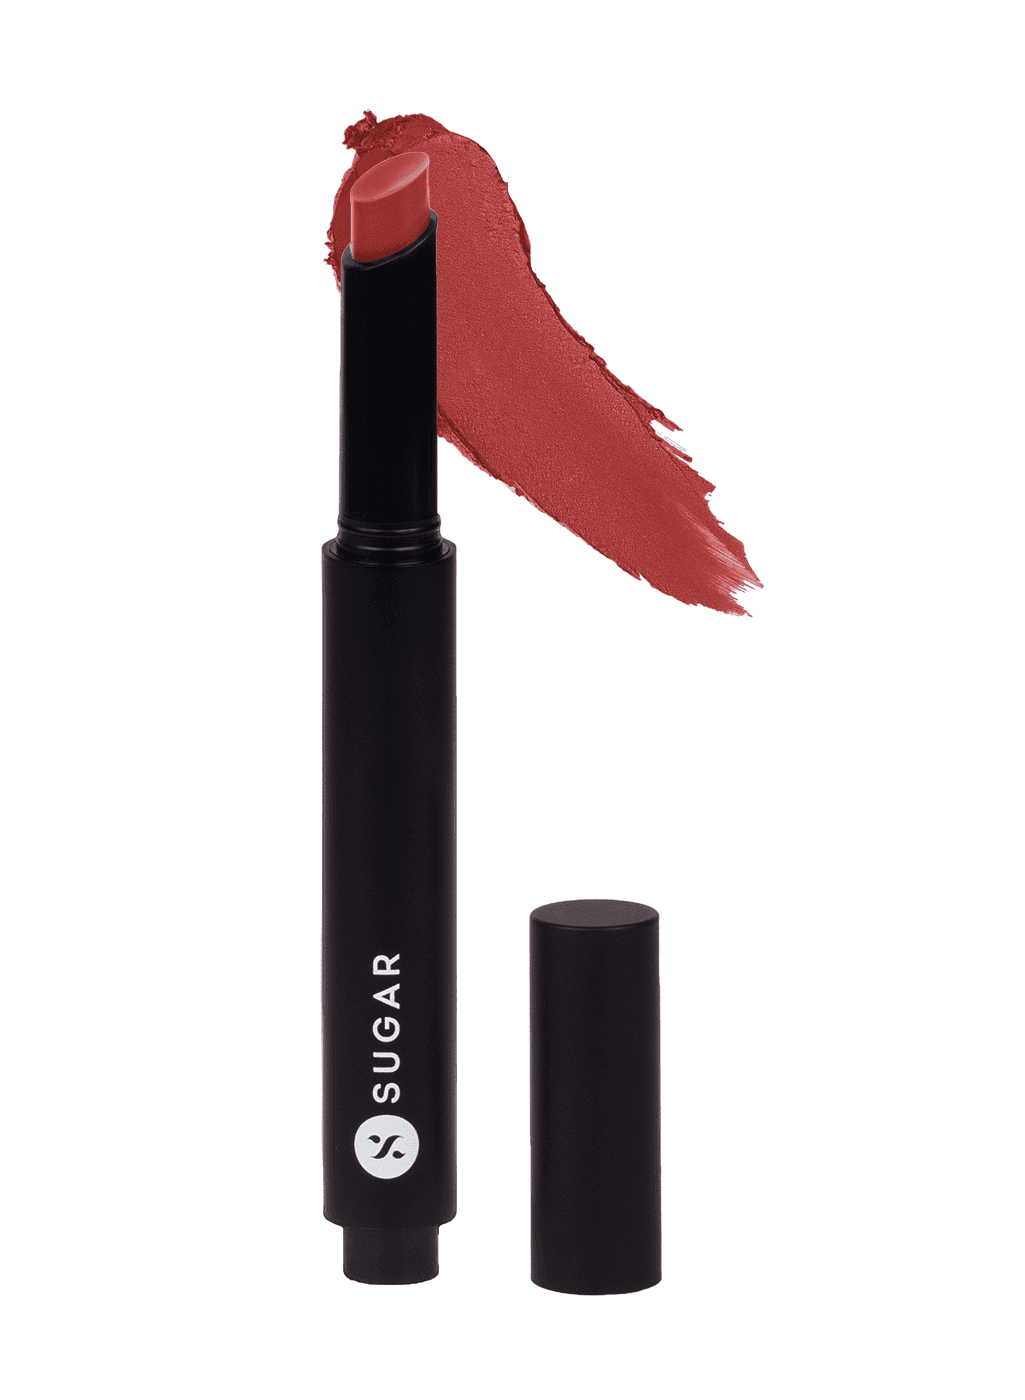 SUGAR Click Me Up Velvet Lipstick - 01 Spicy Salmon (Peach Rose)